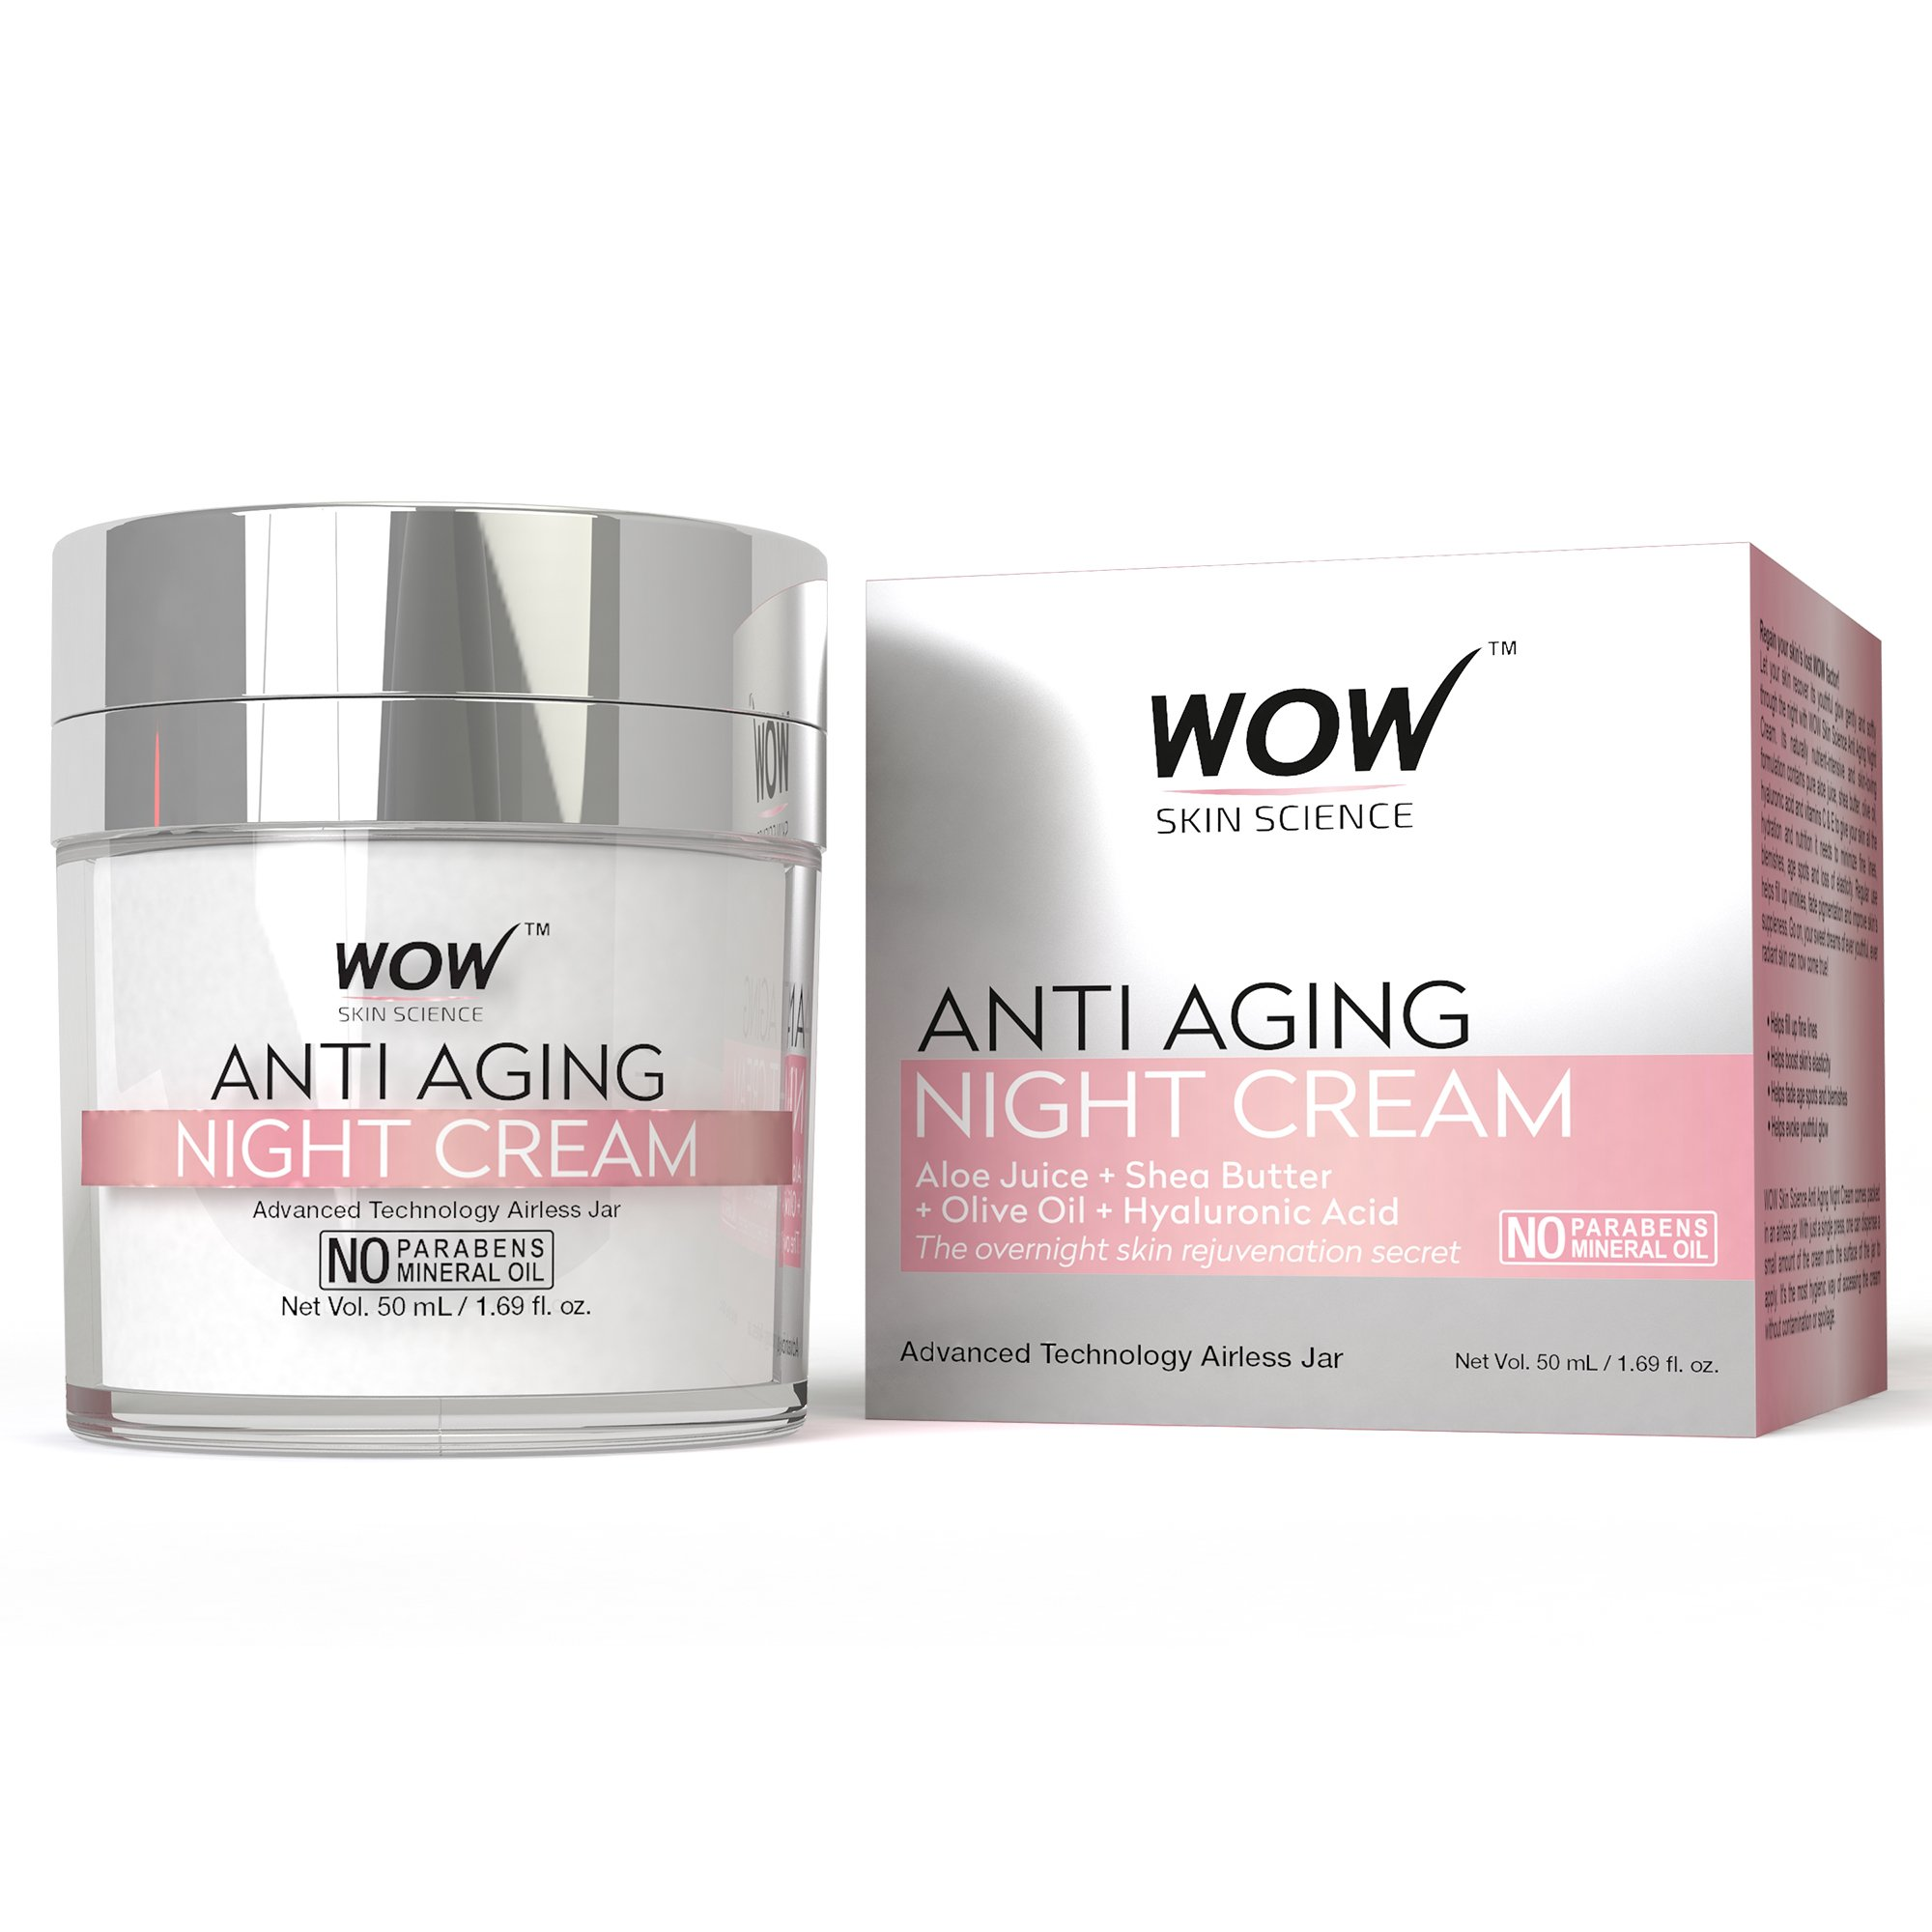 1a8c7cf8372 WOW Anti Aging No Parabens & Mineral Oil Night Cream, 50mL: Amazon.in:  Beauty